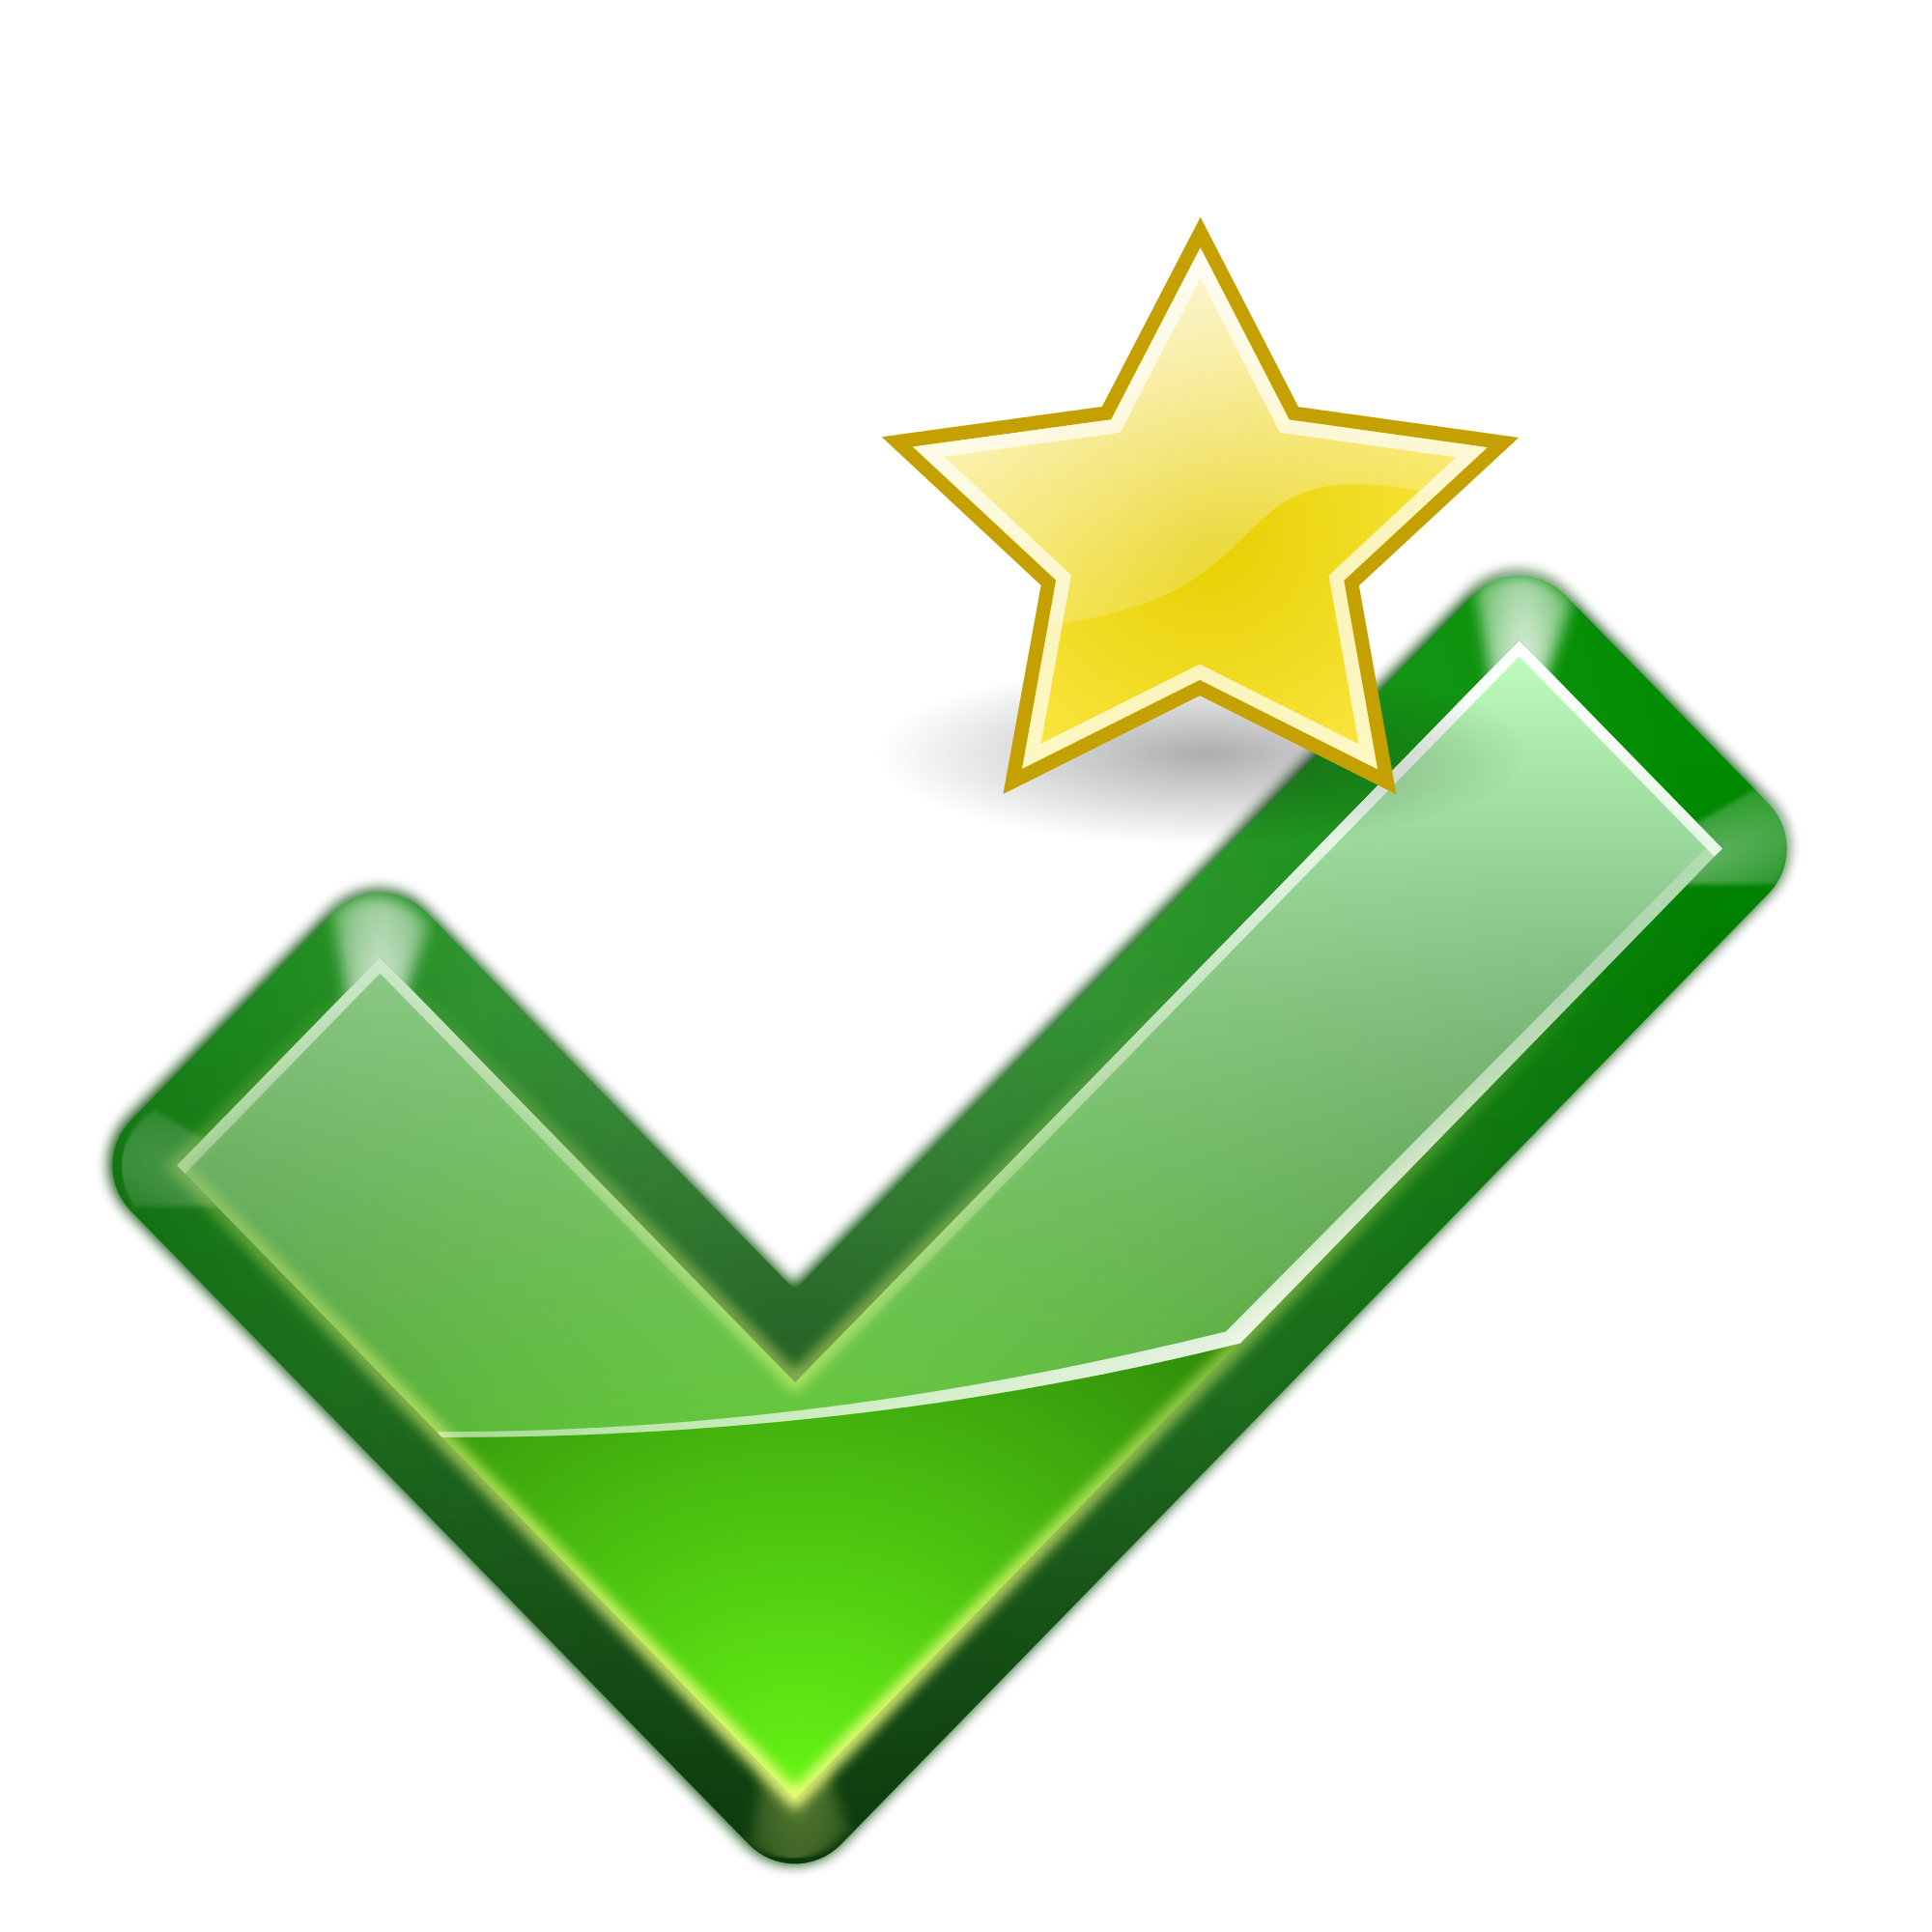 Svg checkmark small. File starred star wikimedia